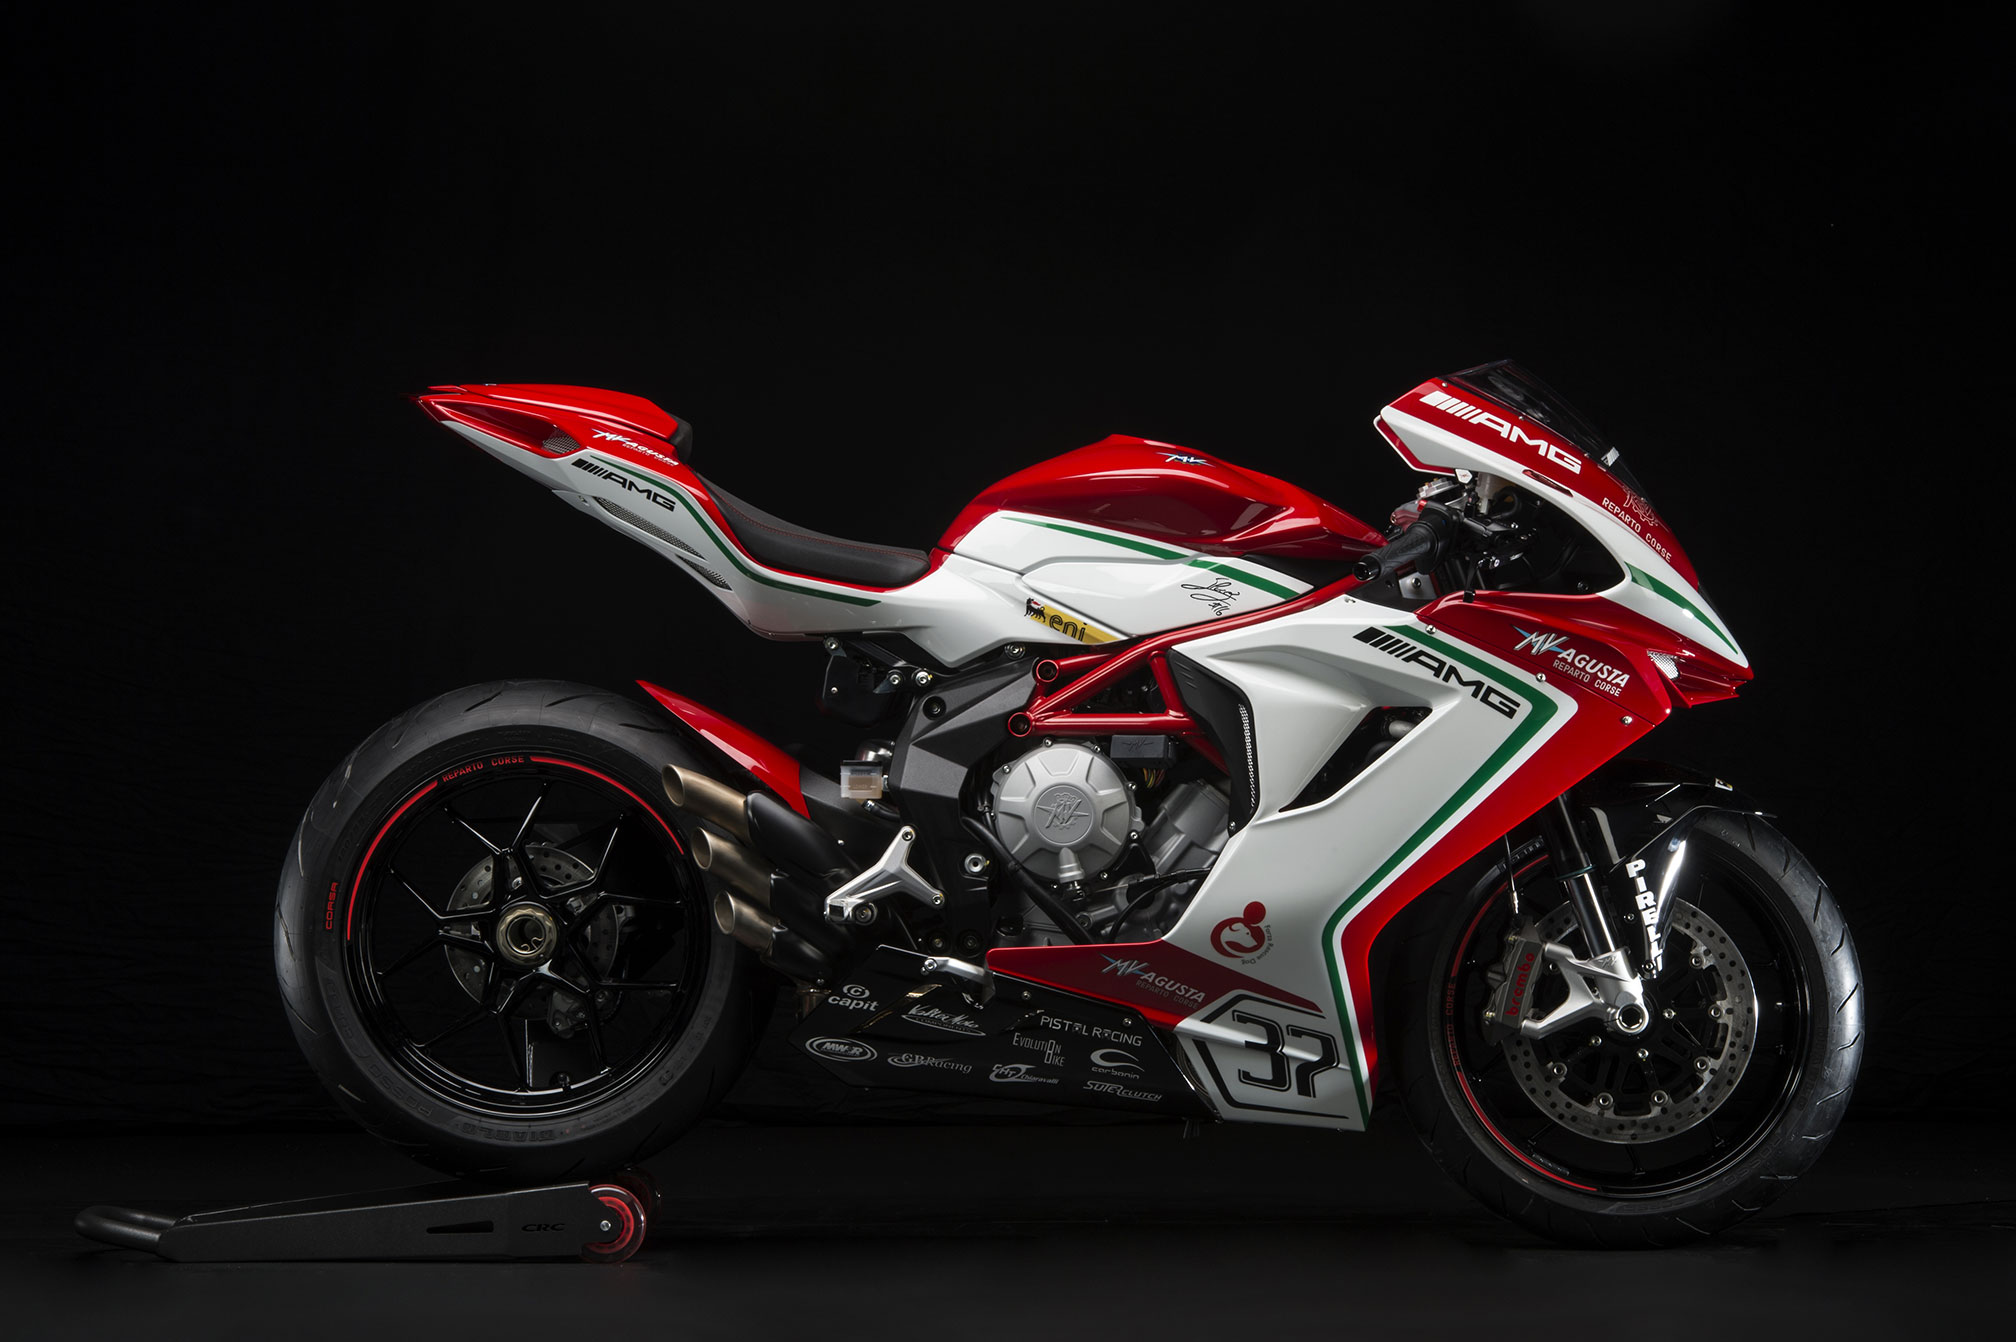 2016 mv agusta f3 800 rc review. Black Bedroom Furniture Sets. Home Design Ideas